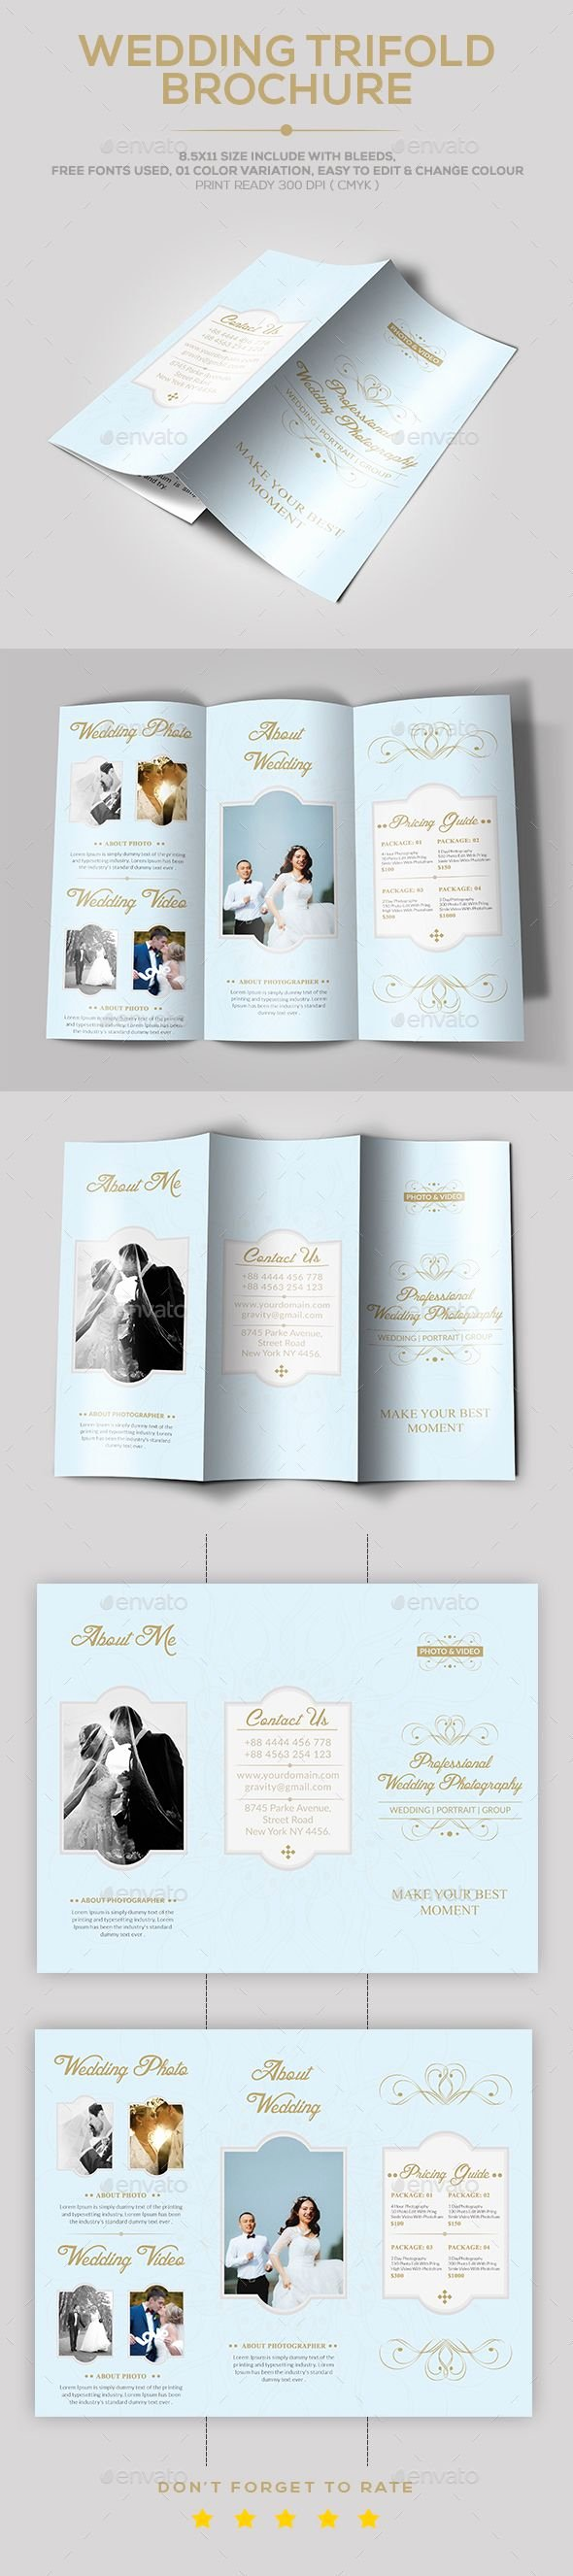 Wedding Brochure Template Free Luxury 25 Unique Wedding Brochure Ideas On Pinterest